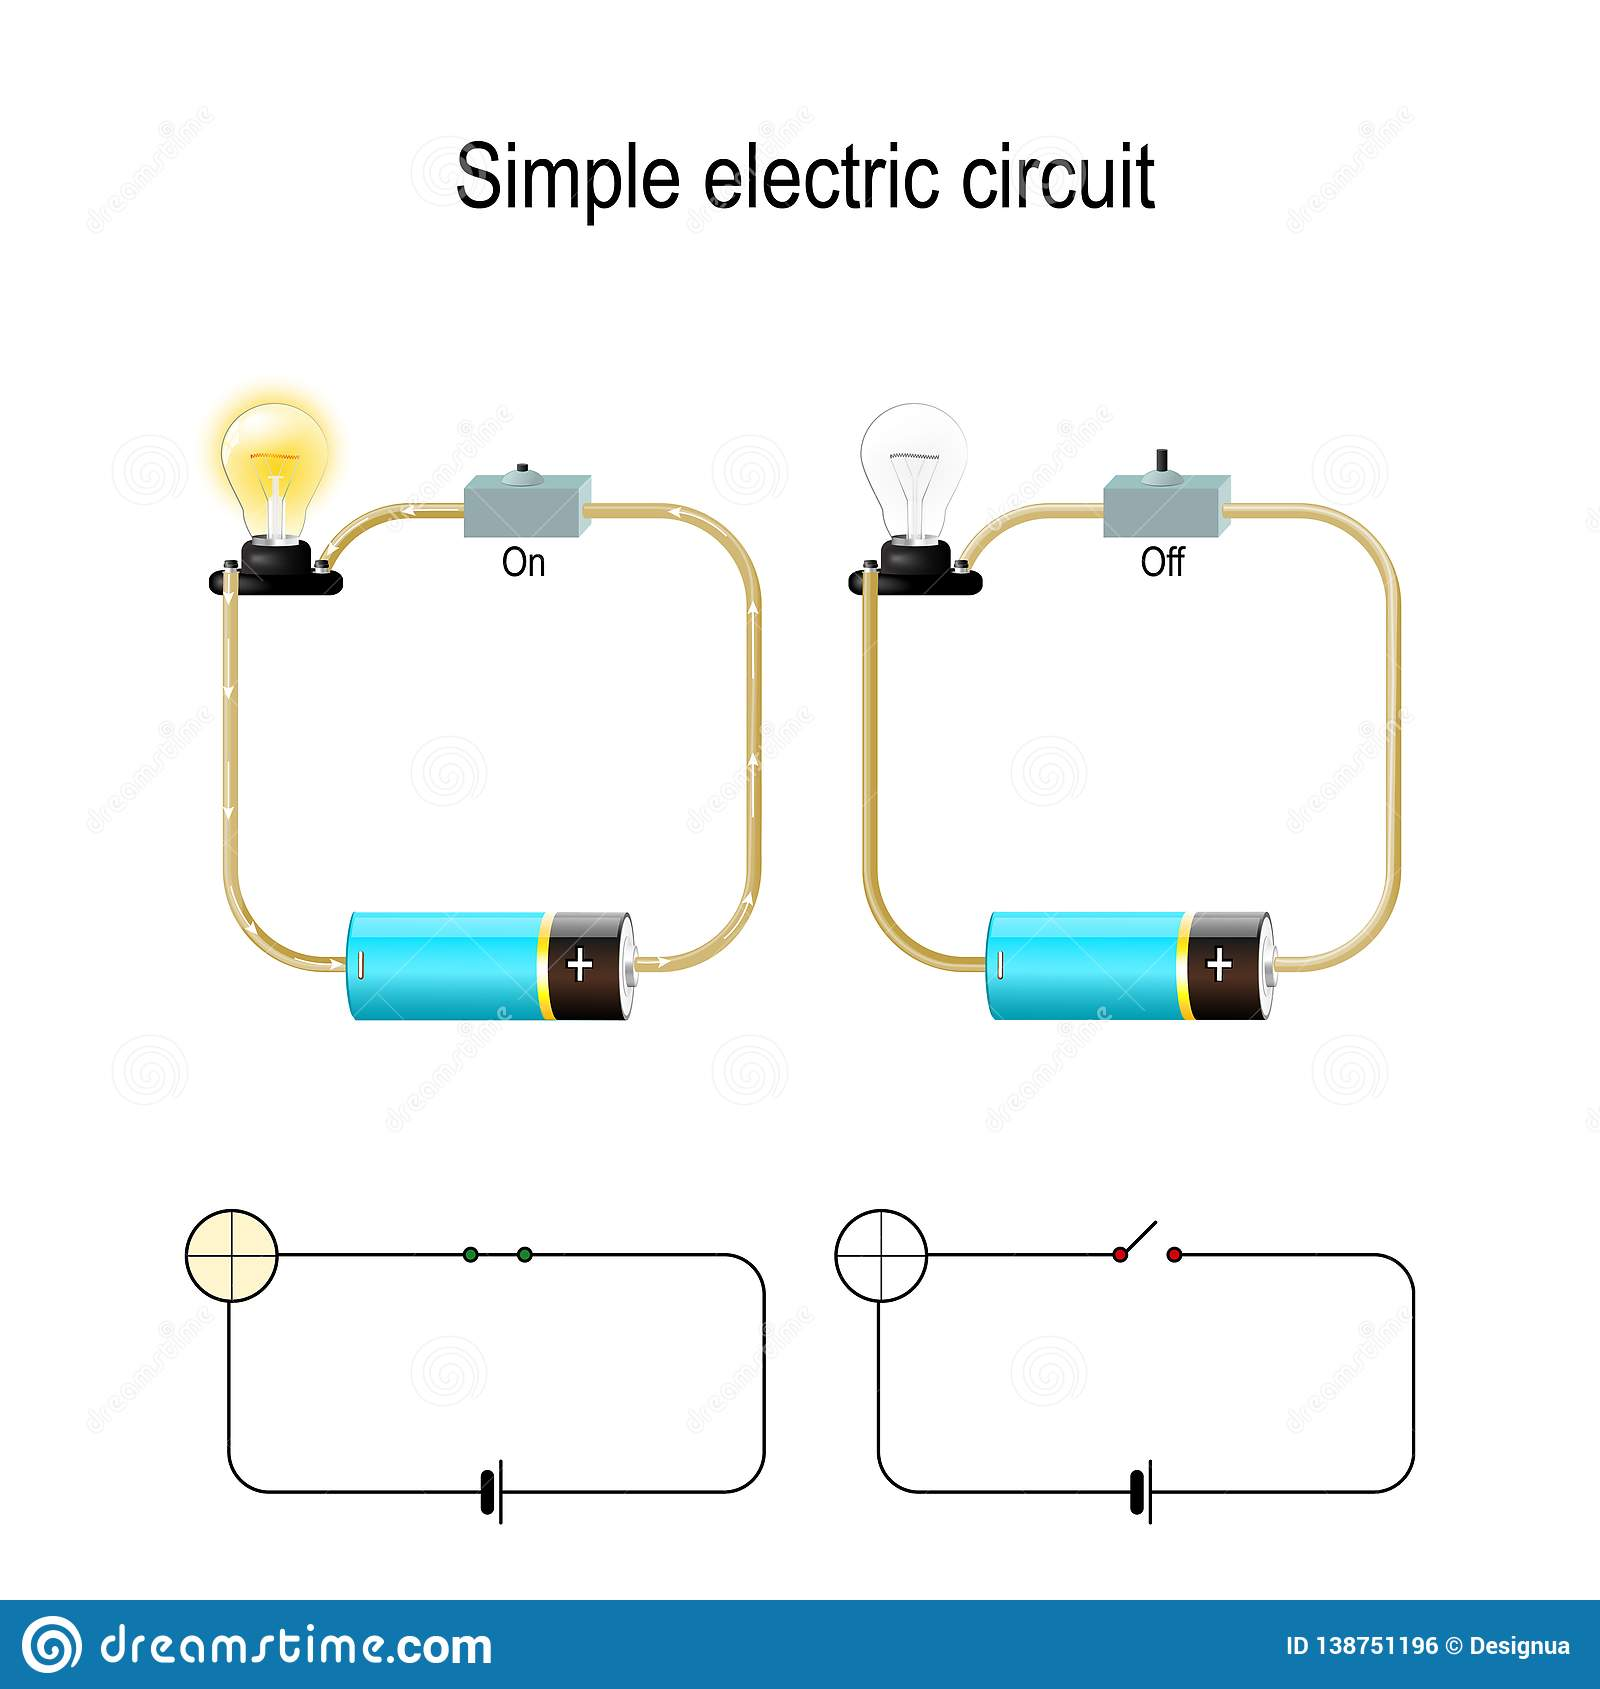 Outstanding Simple Electric Circuit Electrical Network And Lighting Lamp Stock Ranpur Mohammedshrine Wiring Digital Resources Ranpurmohammedshrineorg